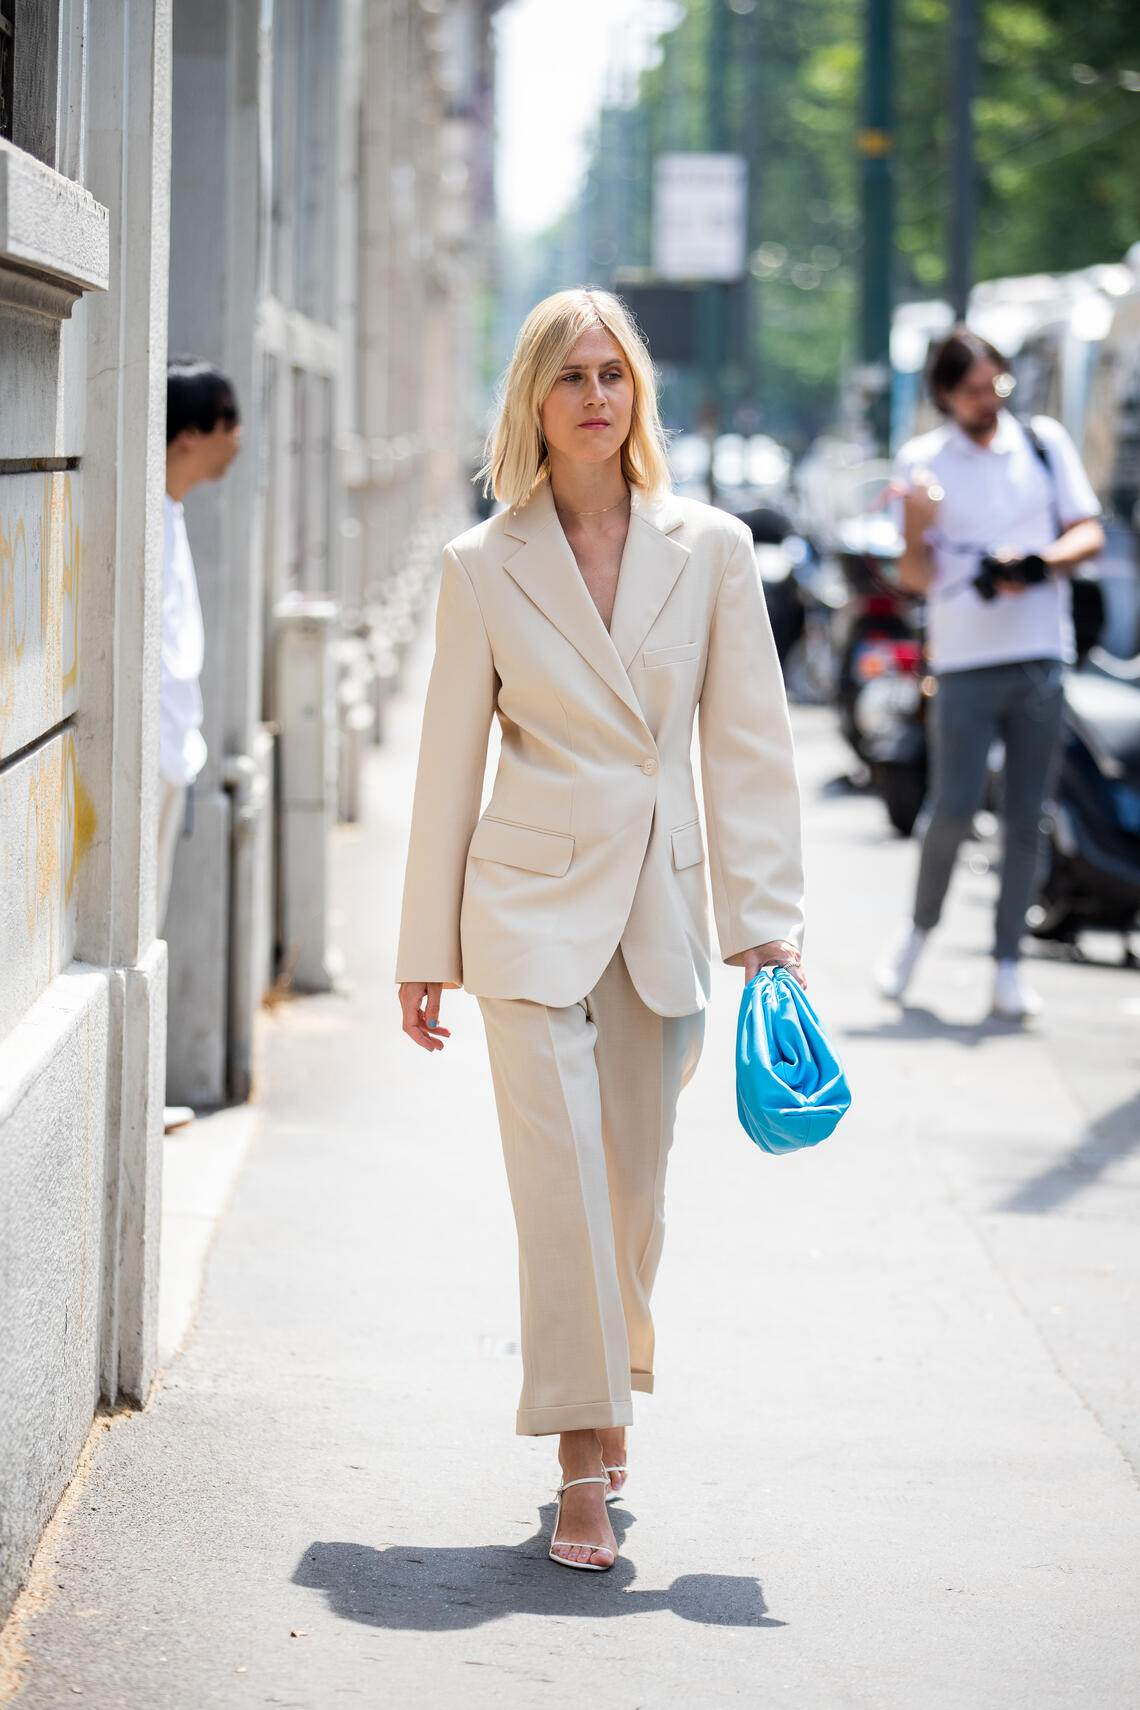 MILAN, ITALY - JUNE 15: Linda Tol is seen wearing beige suit, blue clutch outside Marni during the Milan Men's Fashion Week Spring/Summer 2020 on June 15, 2019 in Milan, Italy. (Photo by Christian Vierig/Getty Images)